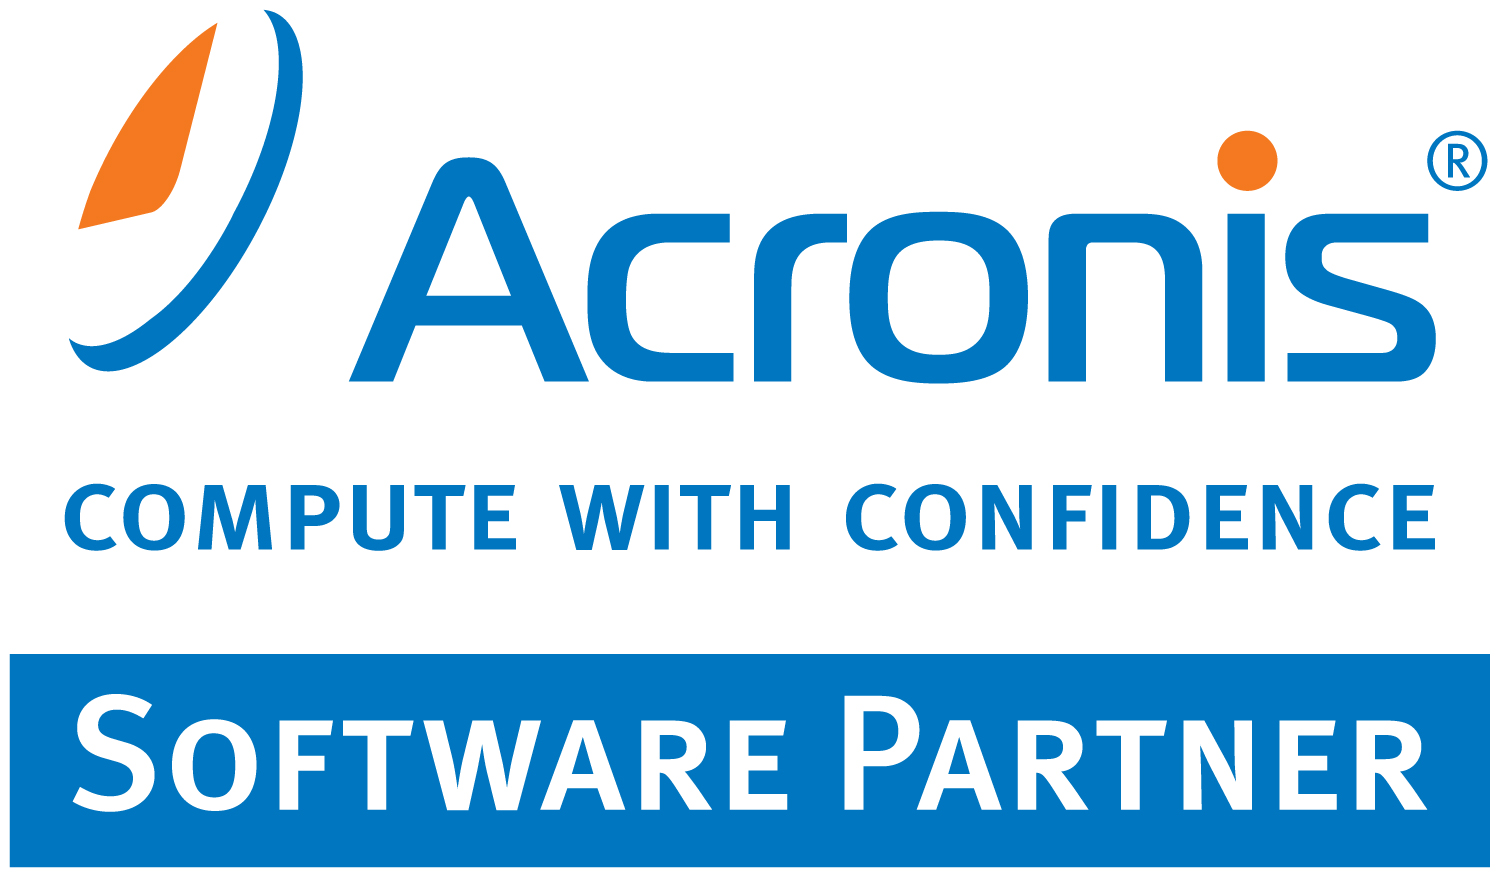 Acronis Partnerlogo